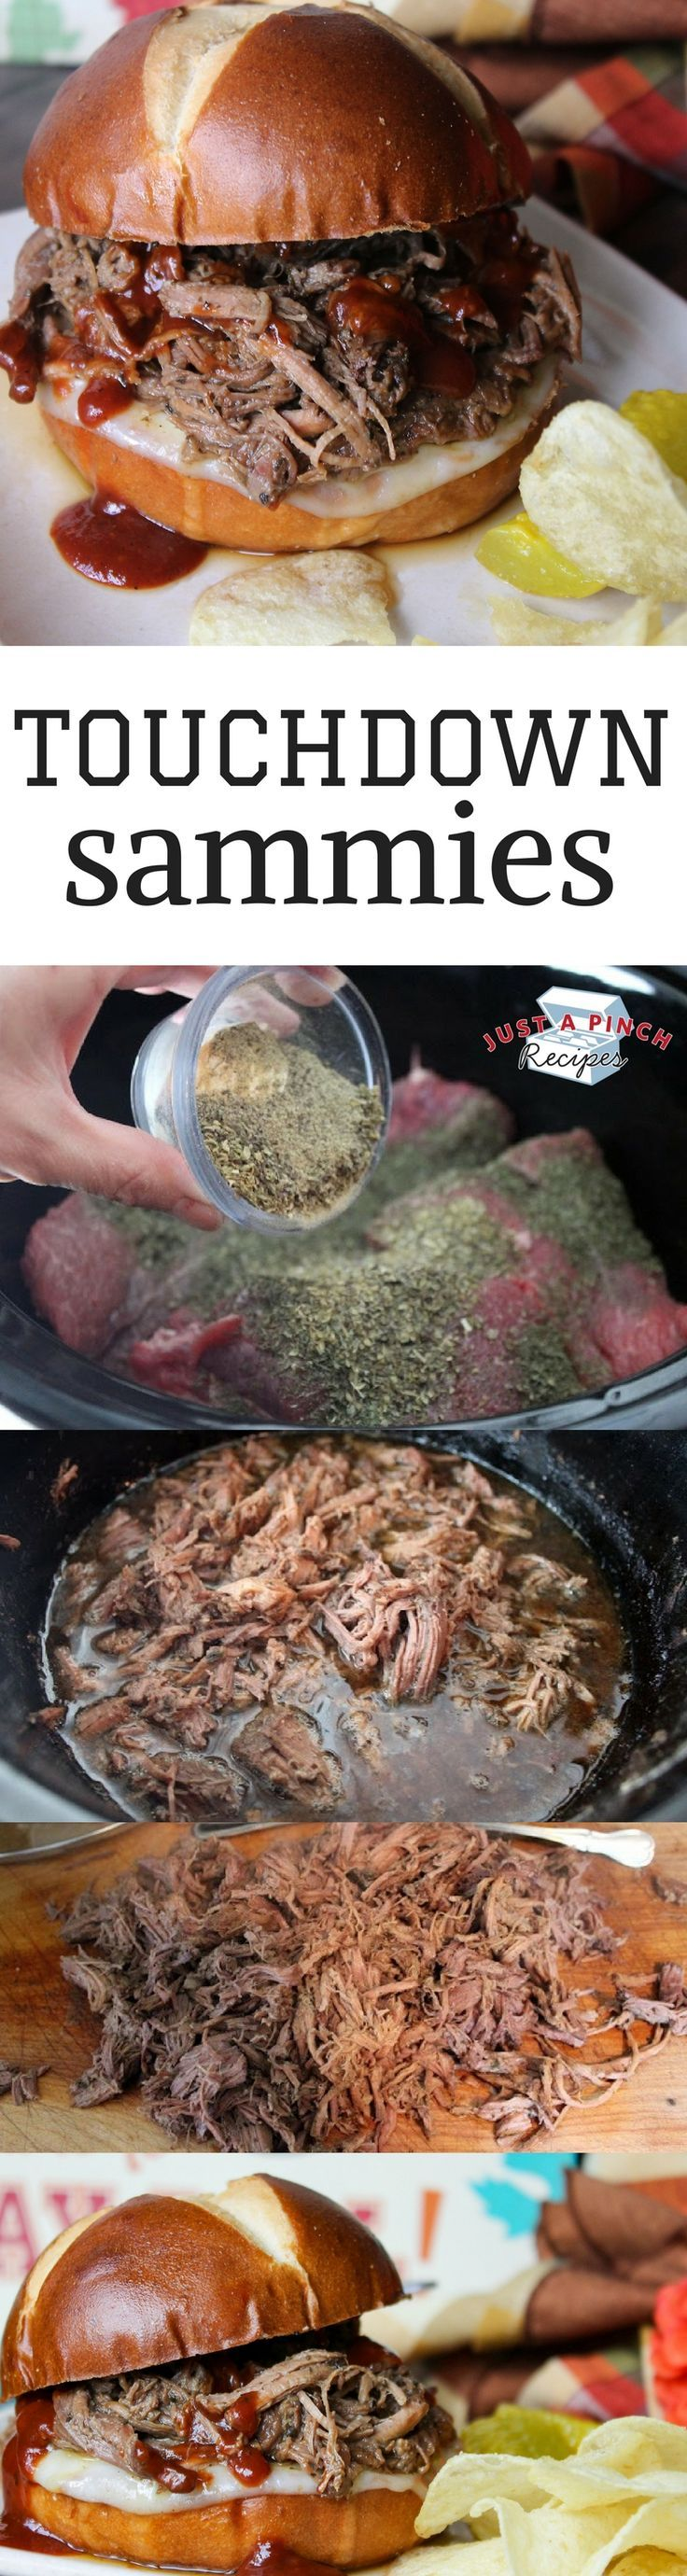 This pulled beef sandwich recipe is so simple and tasty and lets you enjoy the game instead of being chained to the kitchen. Super easy and tasty crock pot recipe!